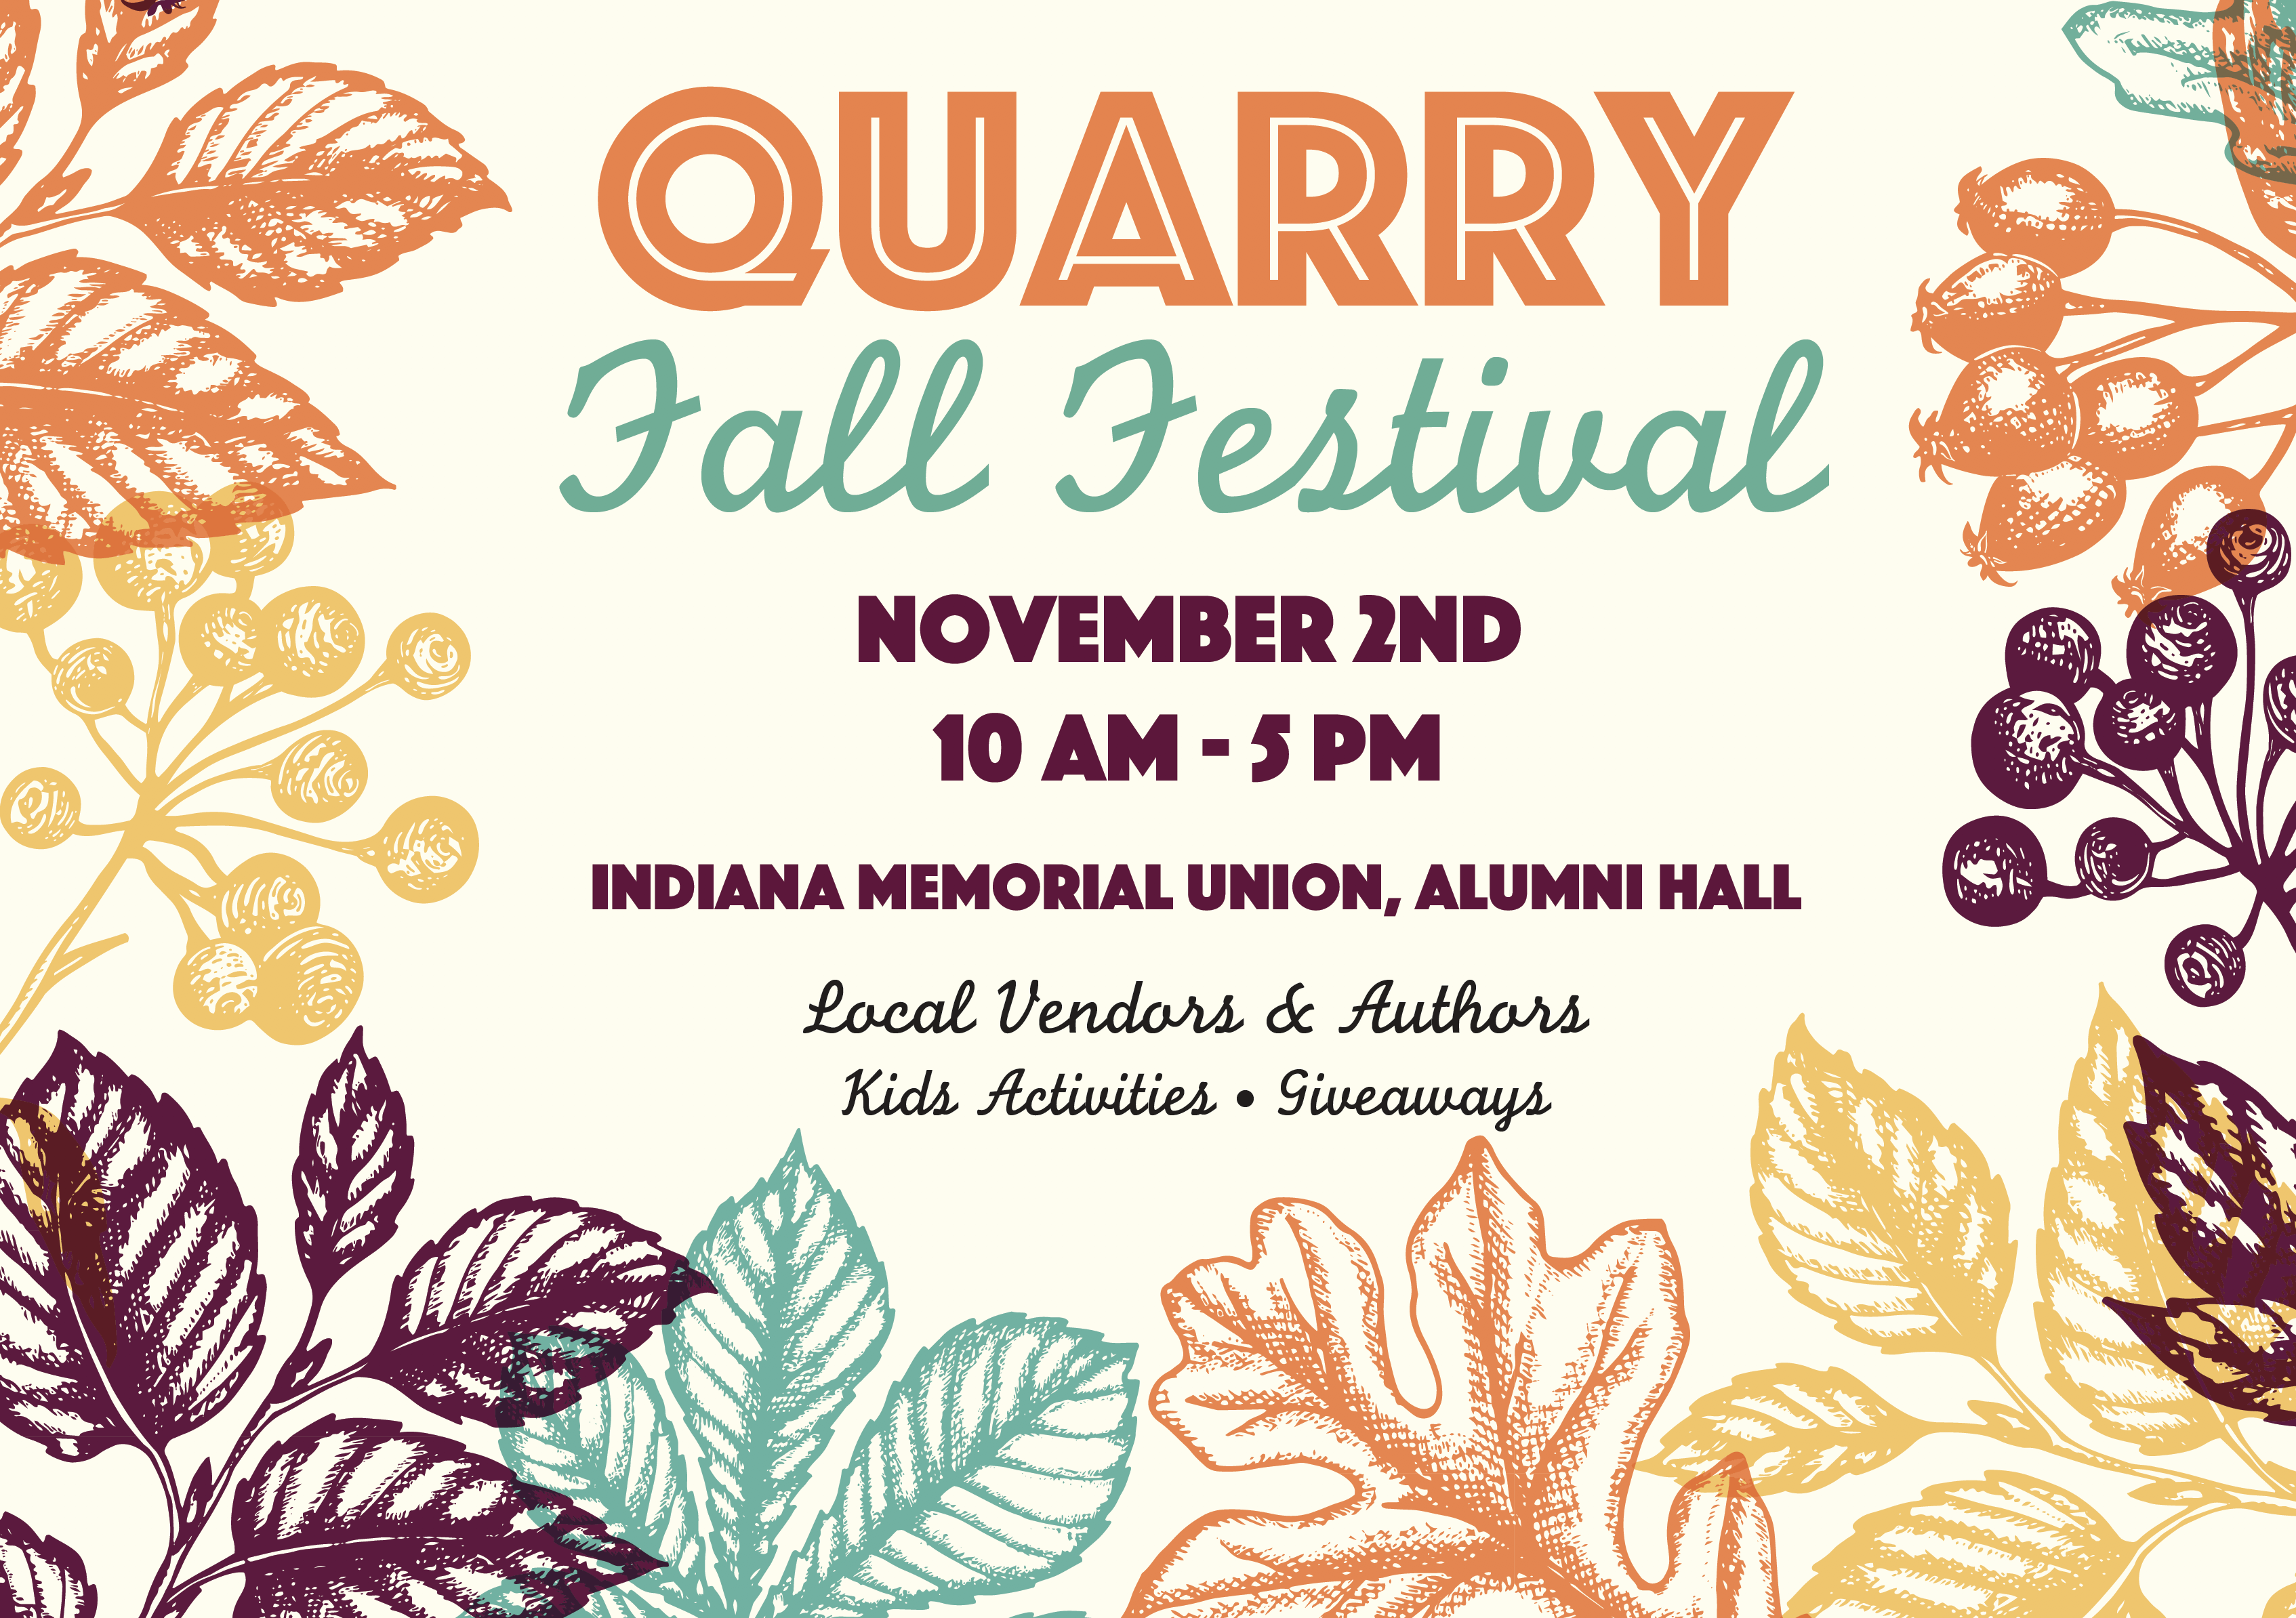 Join us at the Quarry Fall Festival on November 2, 2019!